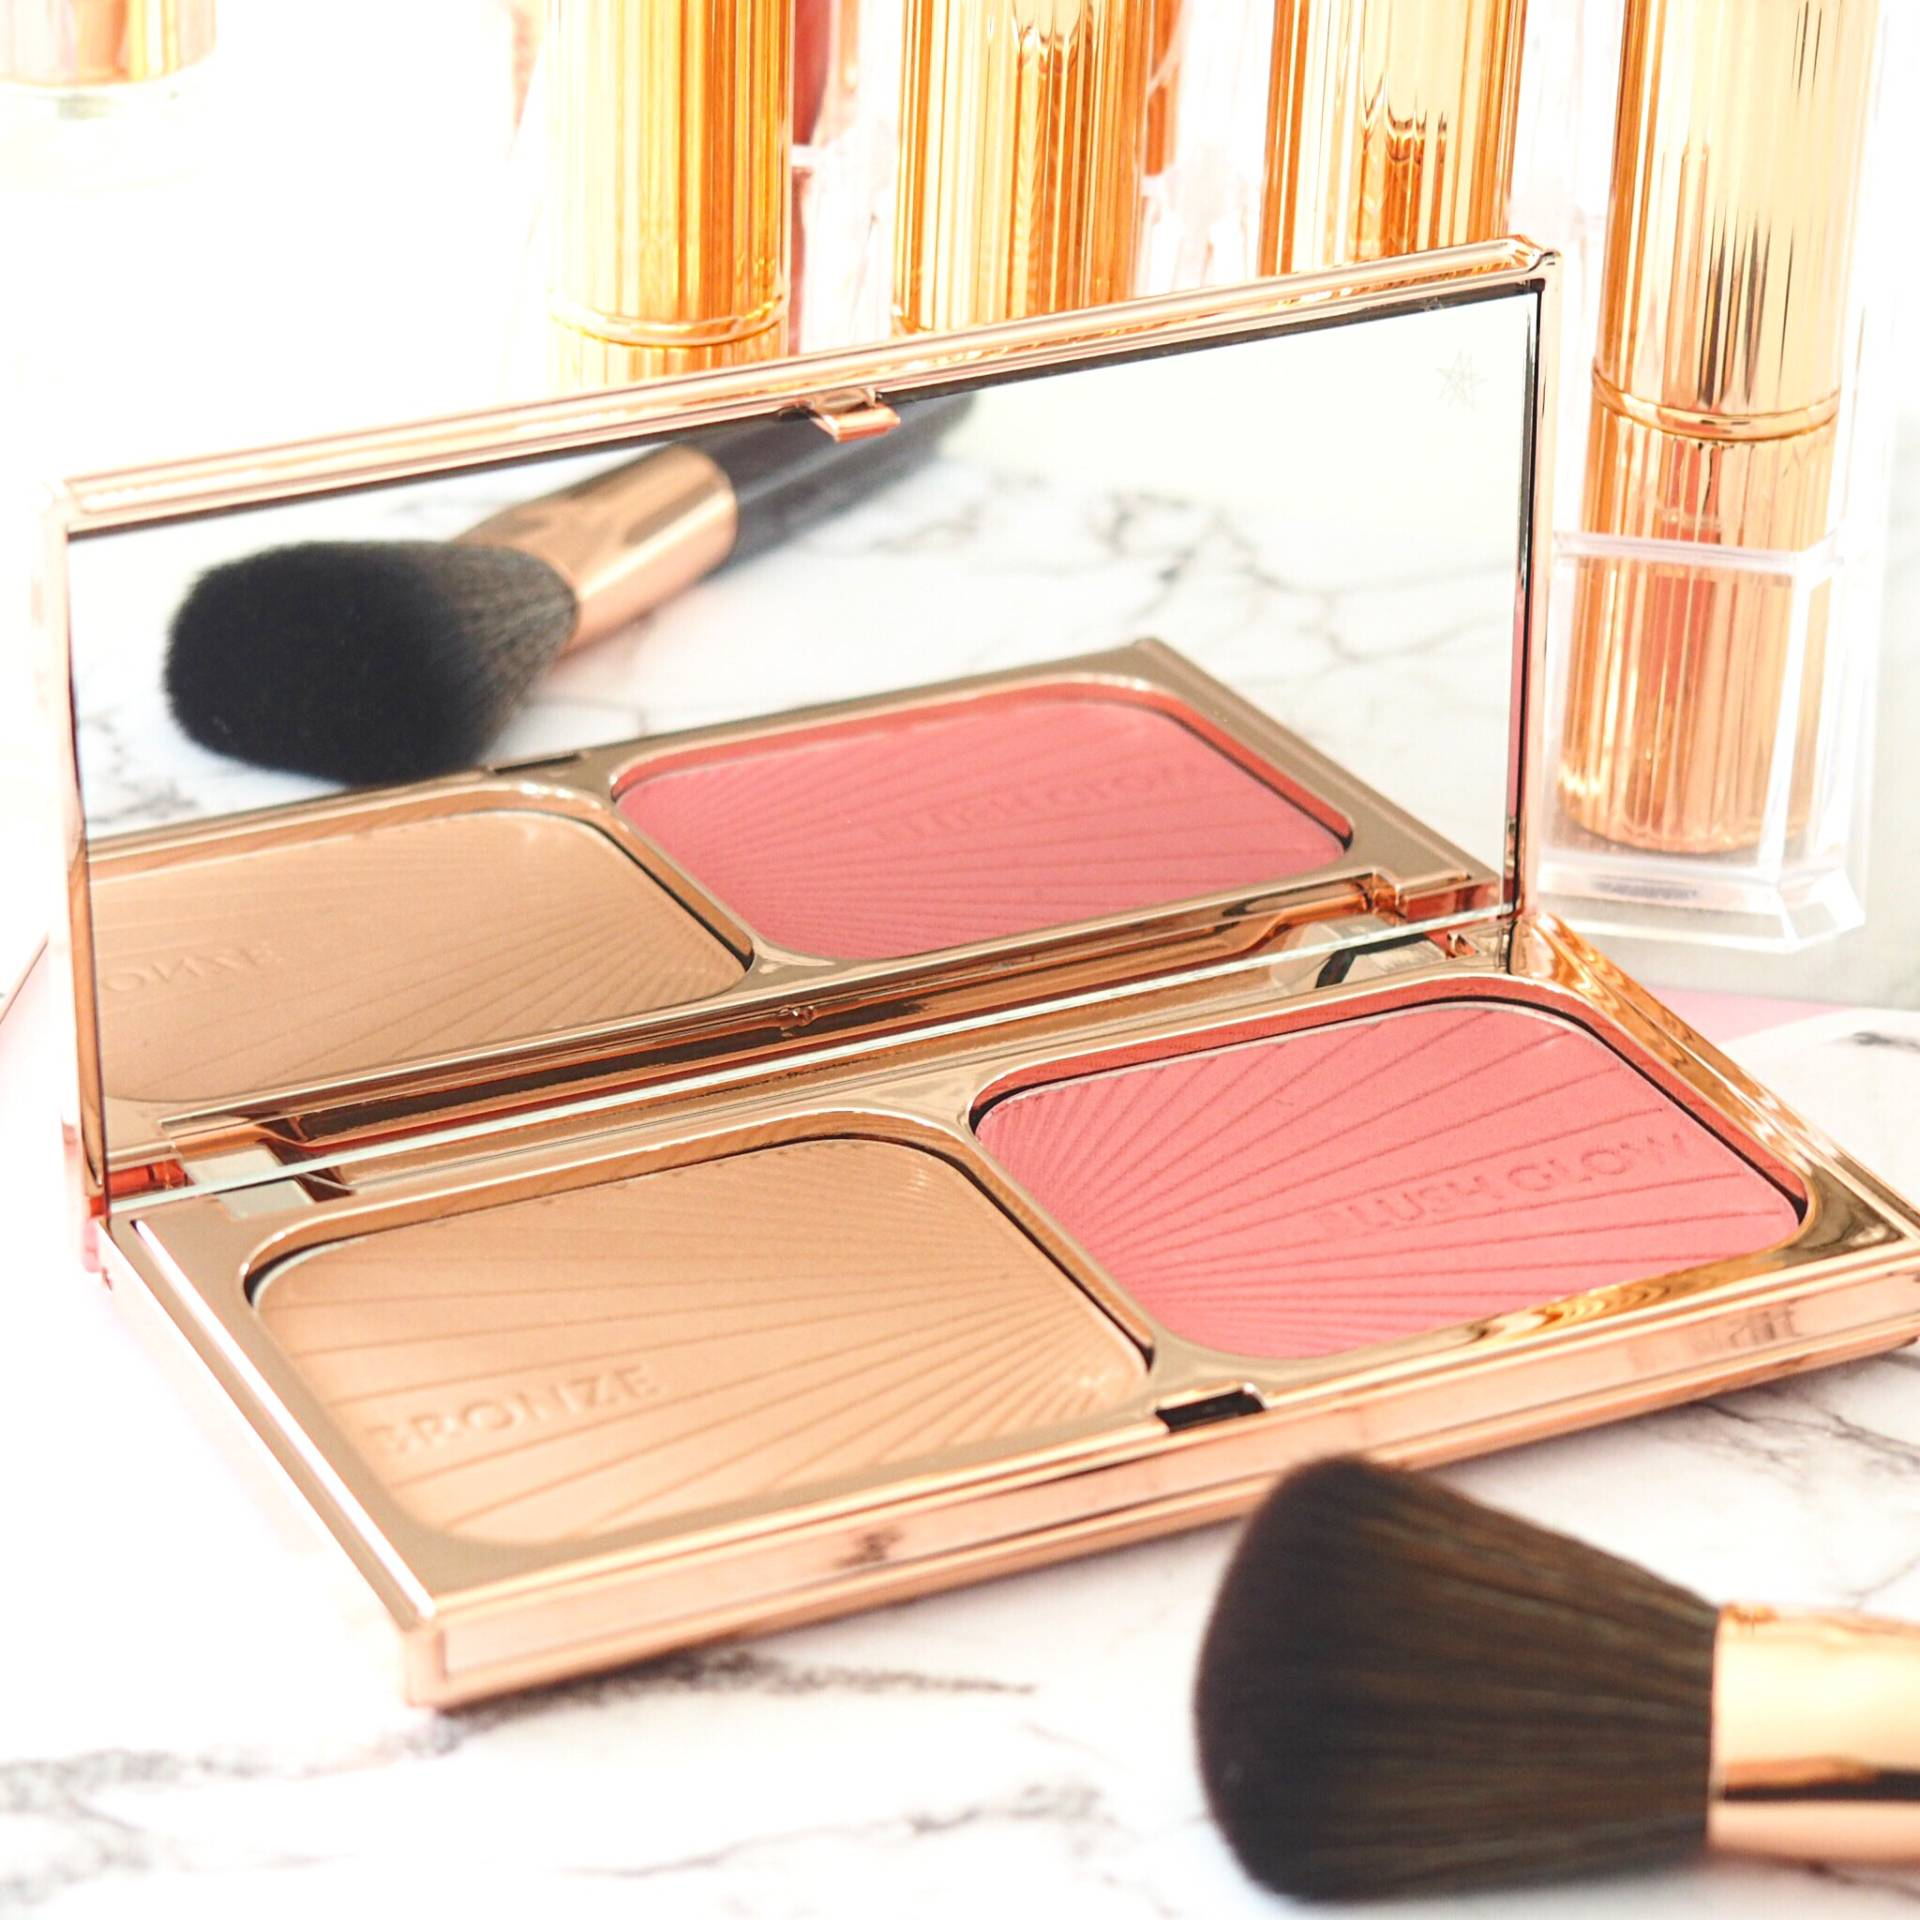 Charlotte Tilbury Bronze and Blush Palette